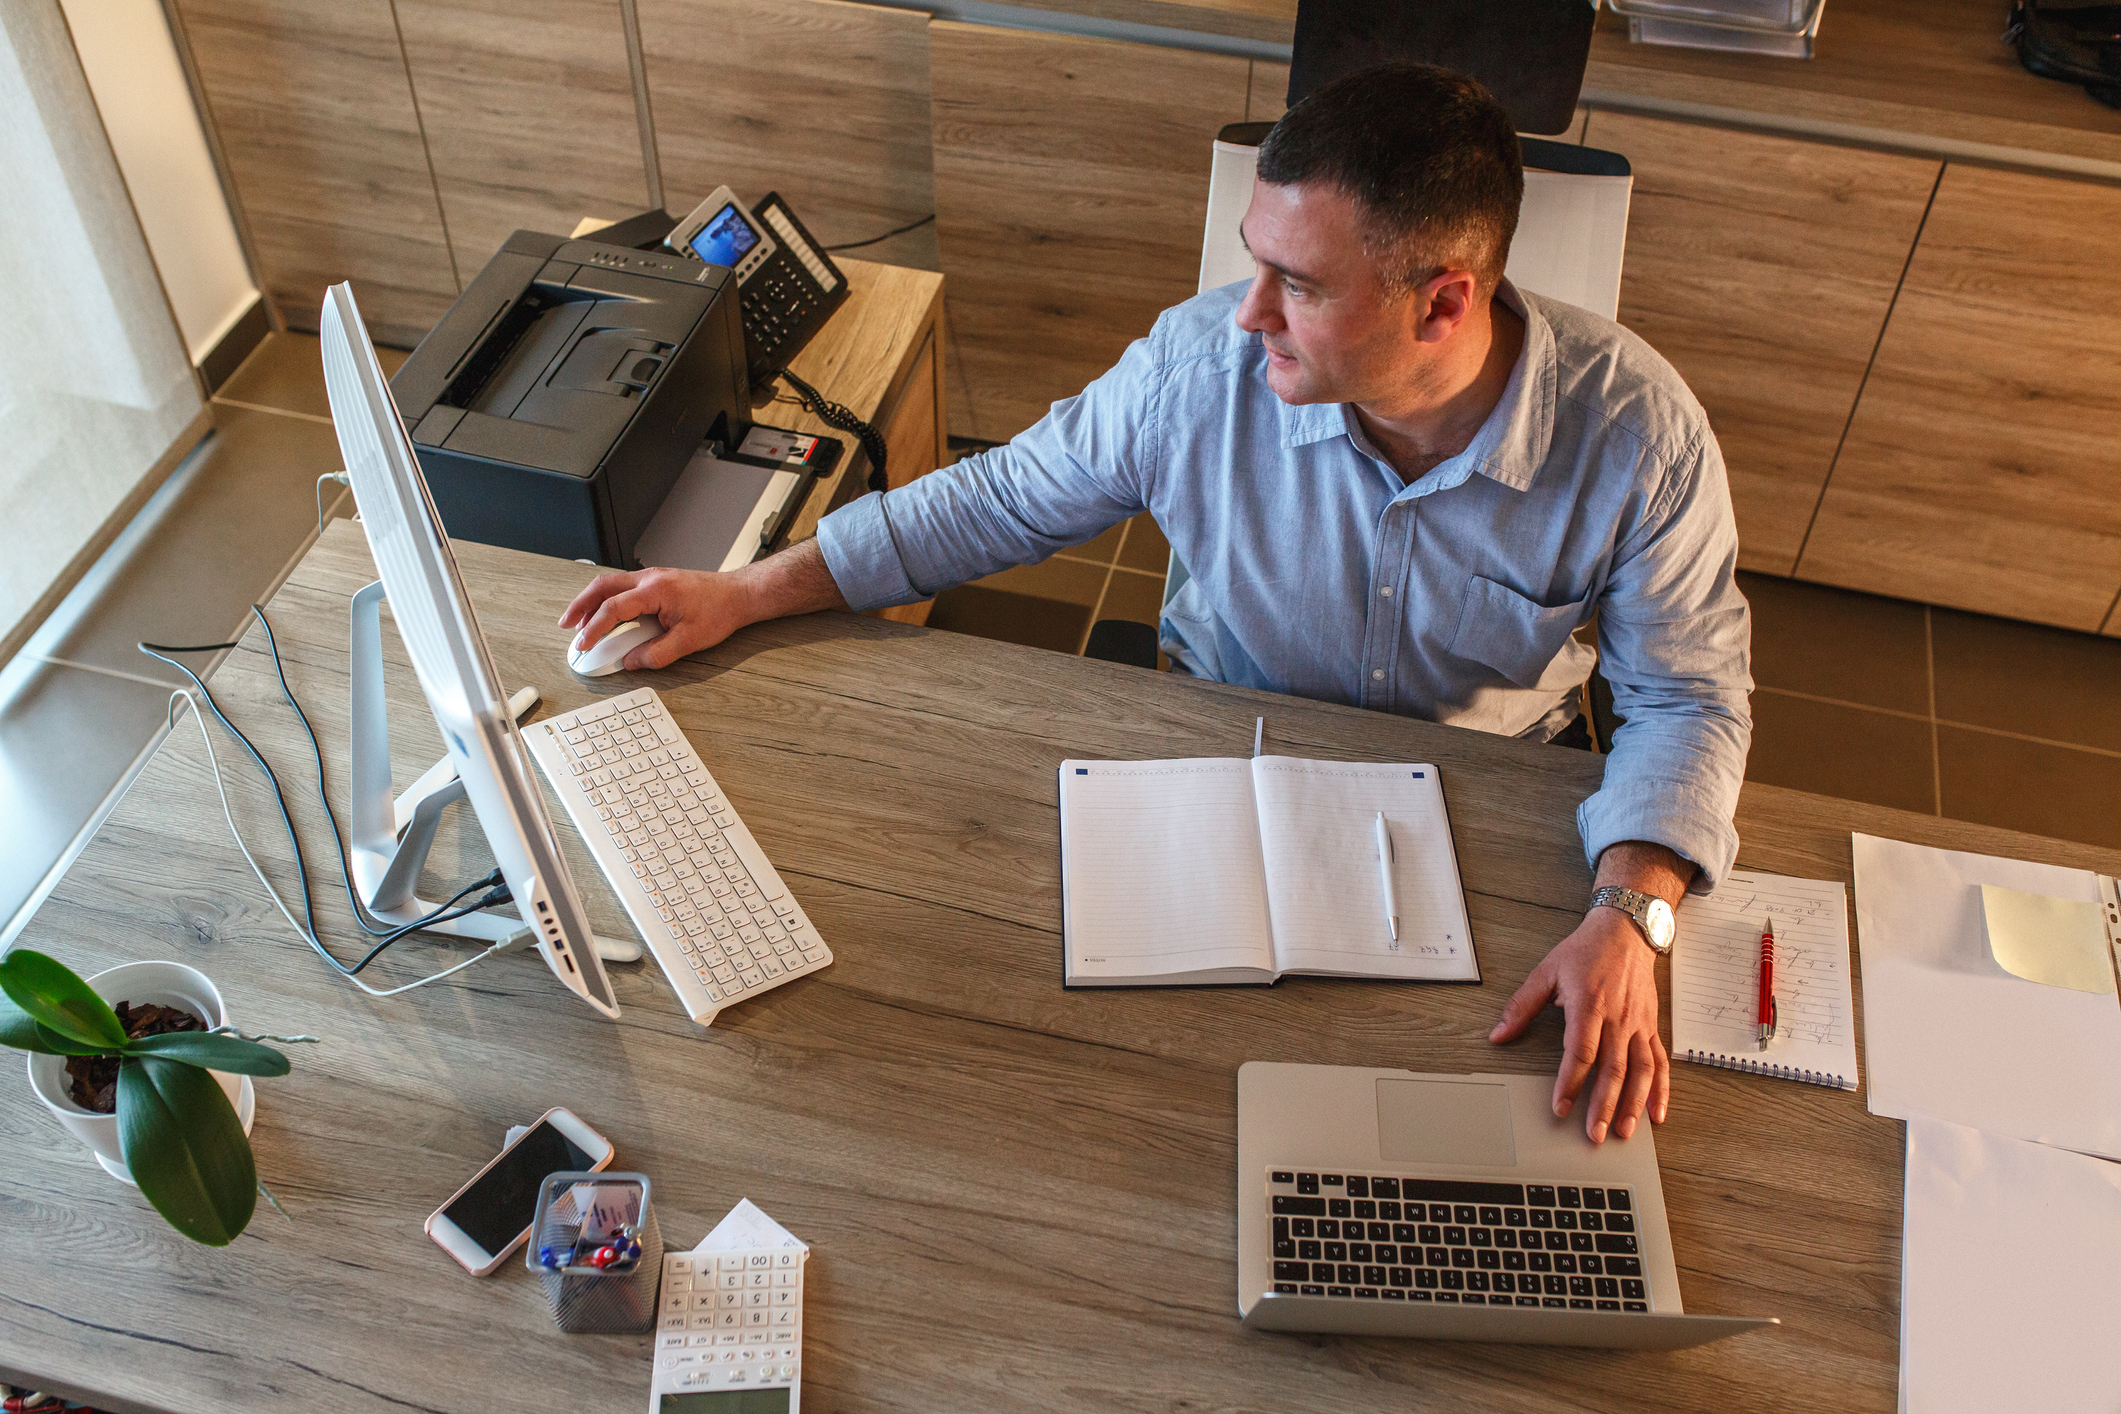 A man sitting at an office desk and working on a computer with a notepad and pen in front of him